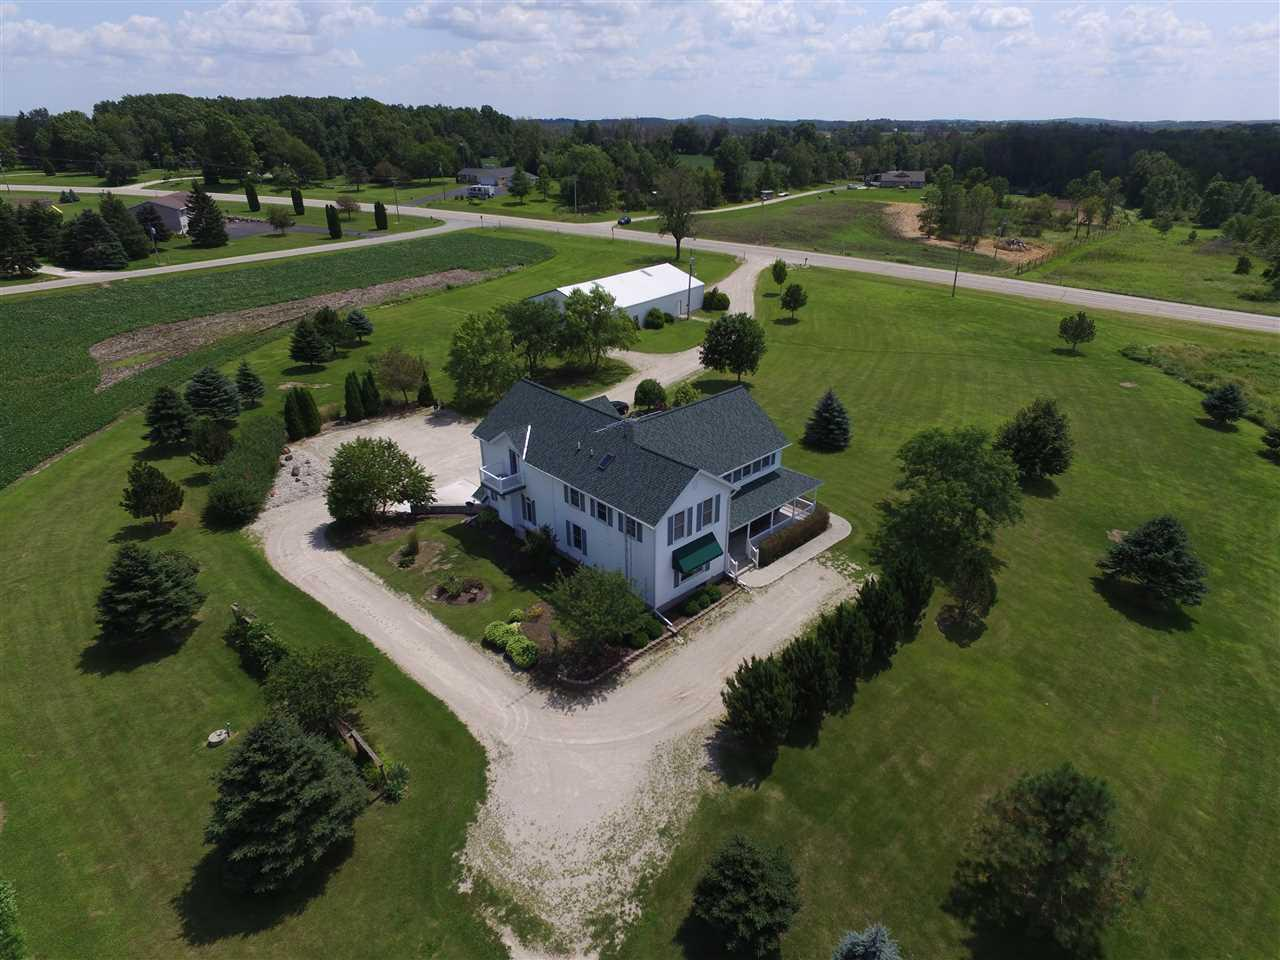 Elegant 3,300 sq.ft. 4 BR 2 1/2 bath 2 story on 6.9 acres of land near the Kettle Moraine Forest. Has great room w/wet bar, master BR w/balcony and Jaccuzi tub, numerous upgrades, plus a 45 x 90 outbuilding. $405,000. Up to an additional 45 acres available!